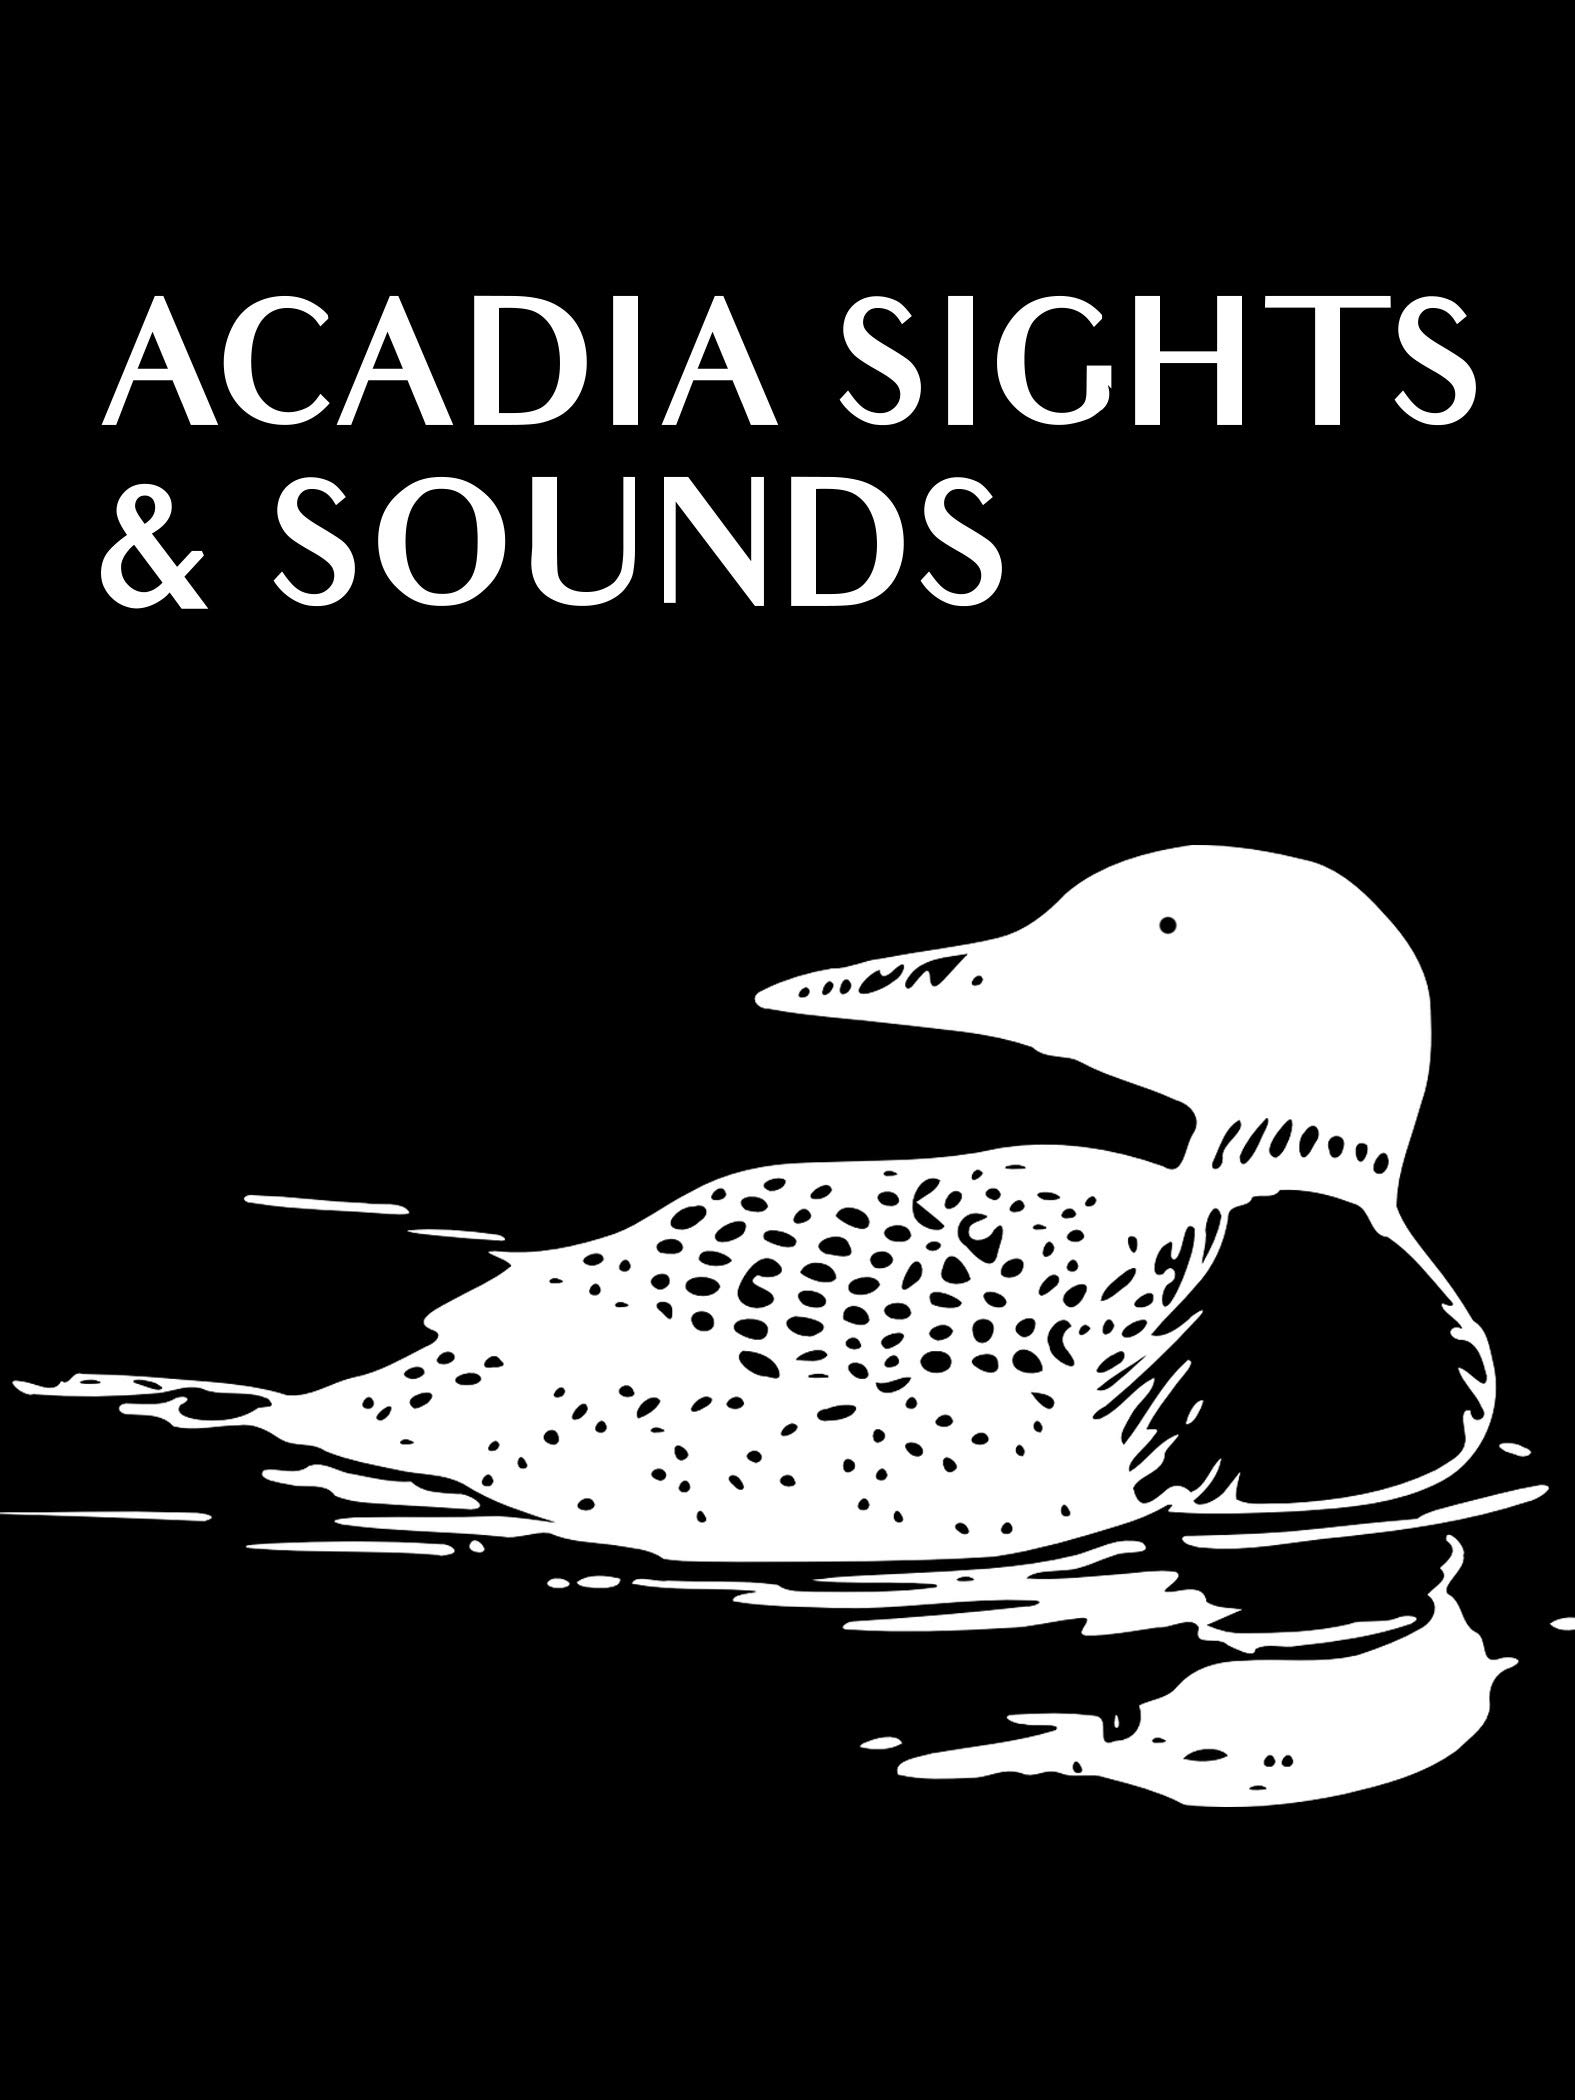 Acadia Sights & Sounds